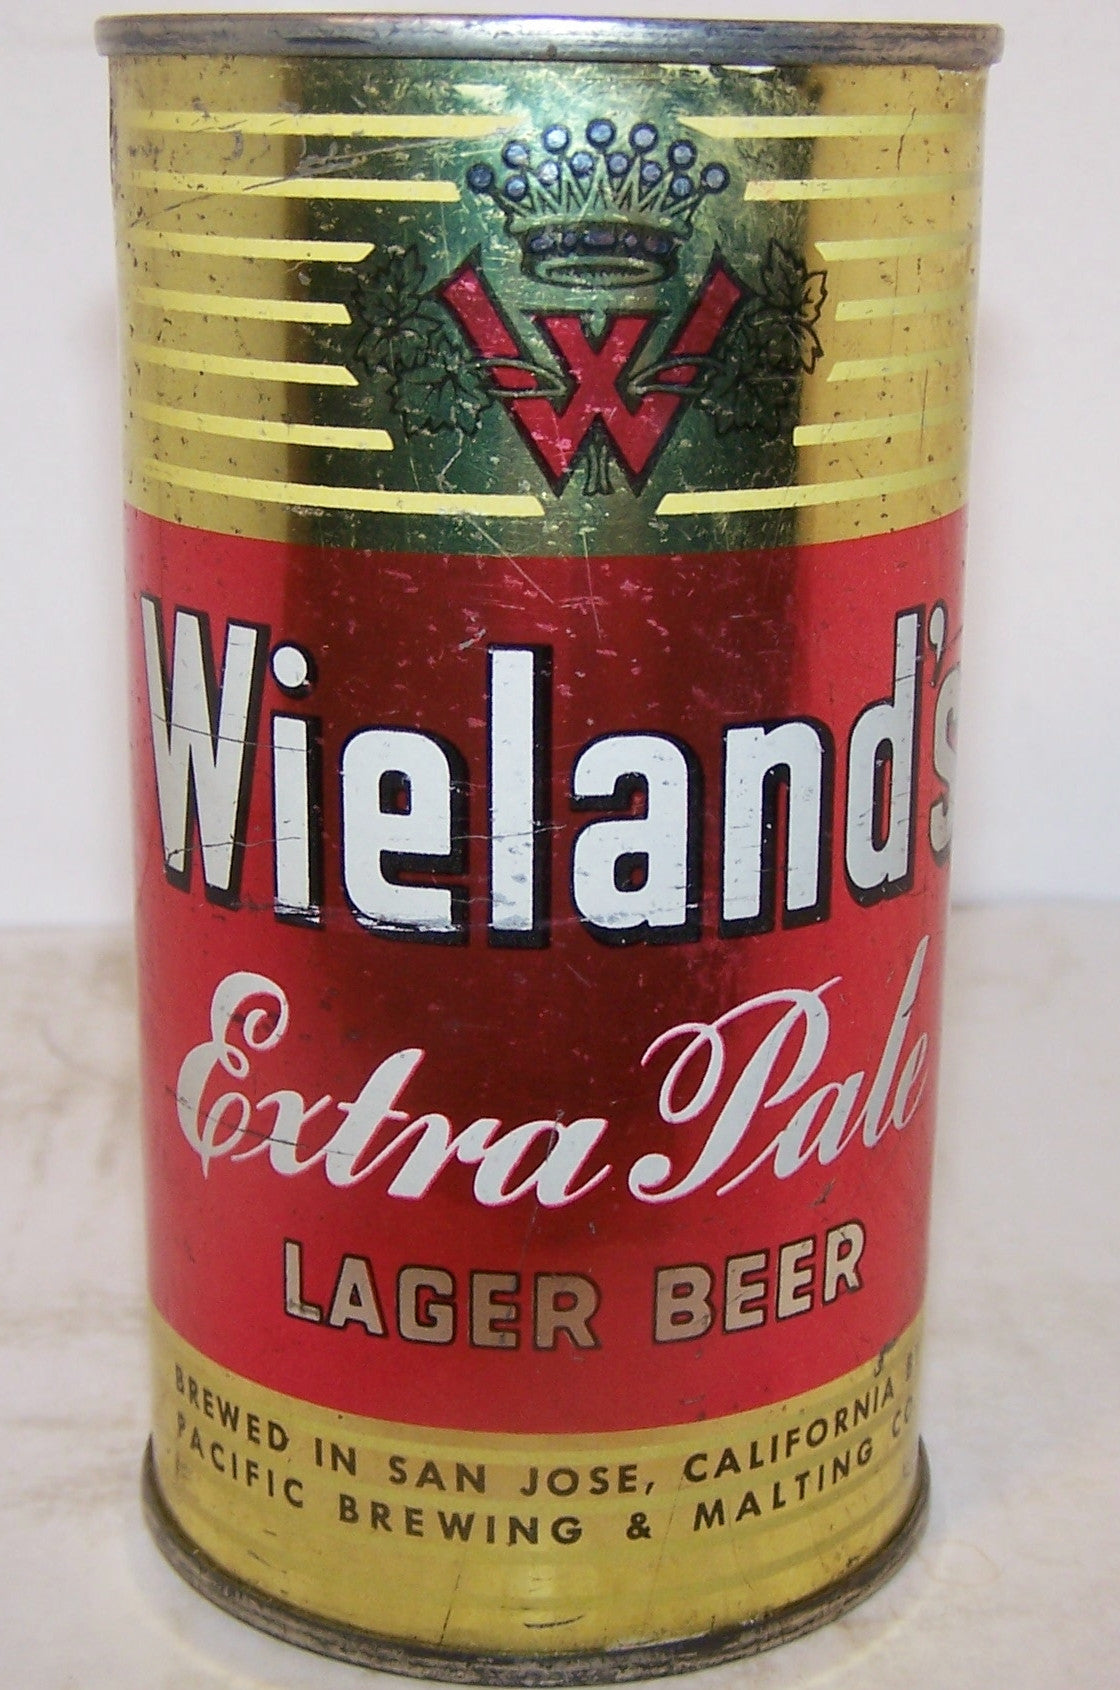 Weiland's Extra Pale beer, USBC 146-1, rolled can, grade 1- Sold on 04/11/18